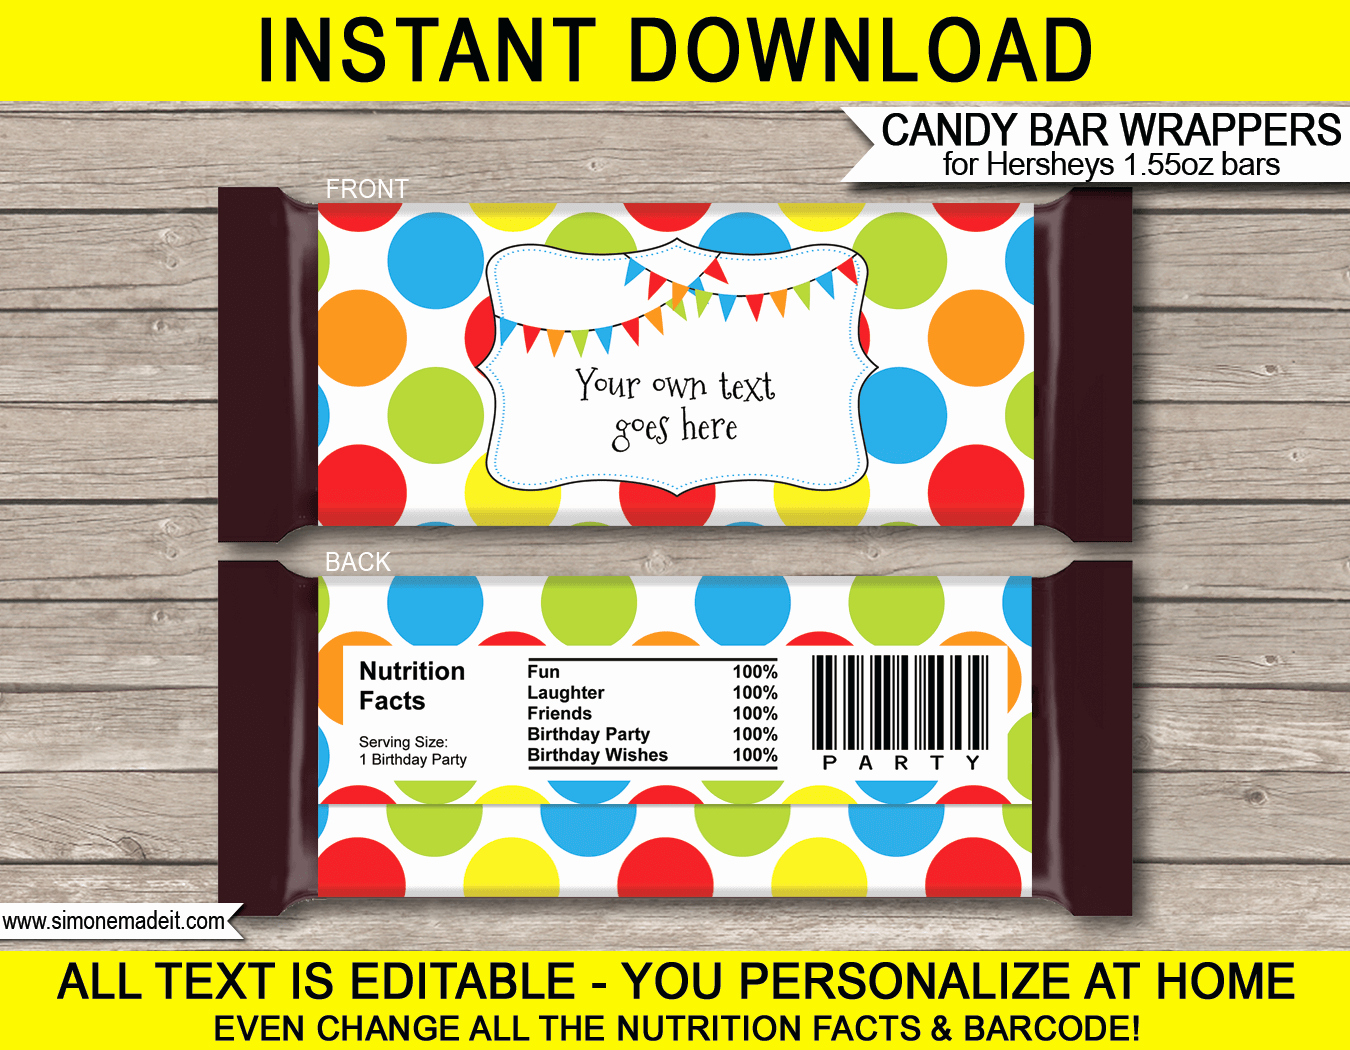 Free Candy Wrapper Template Unique Polkadot Hershey Candy Bar Wrappers